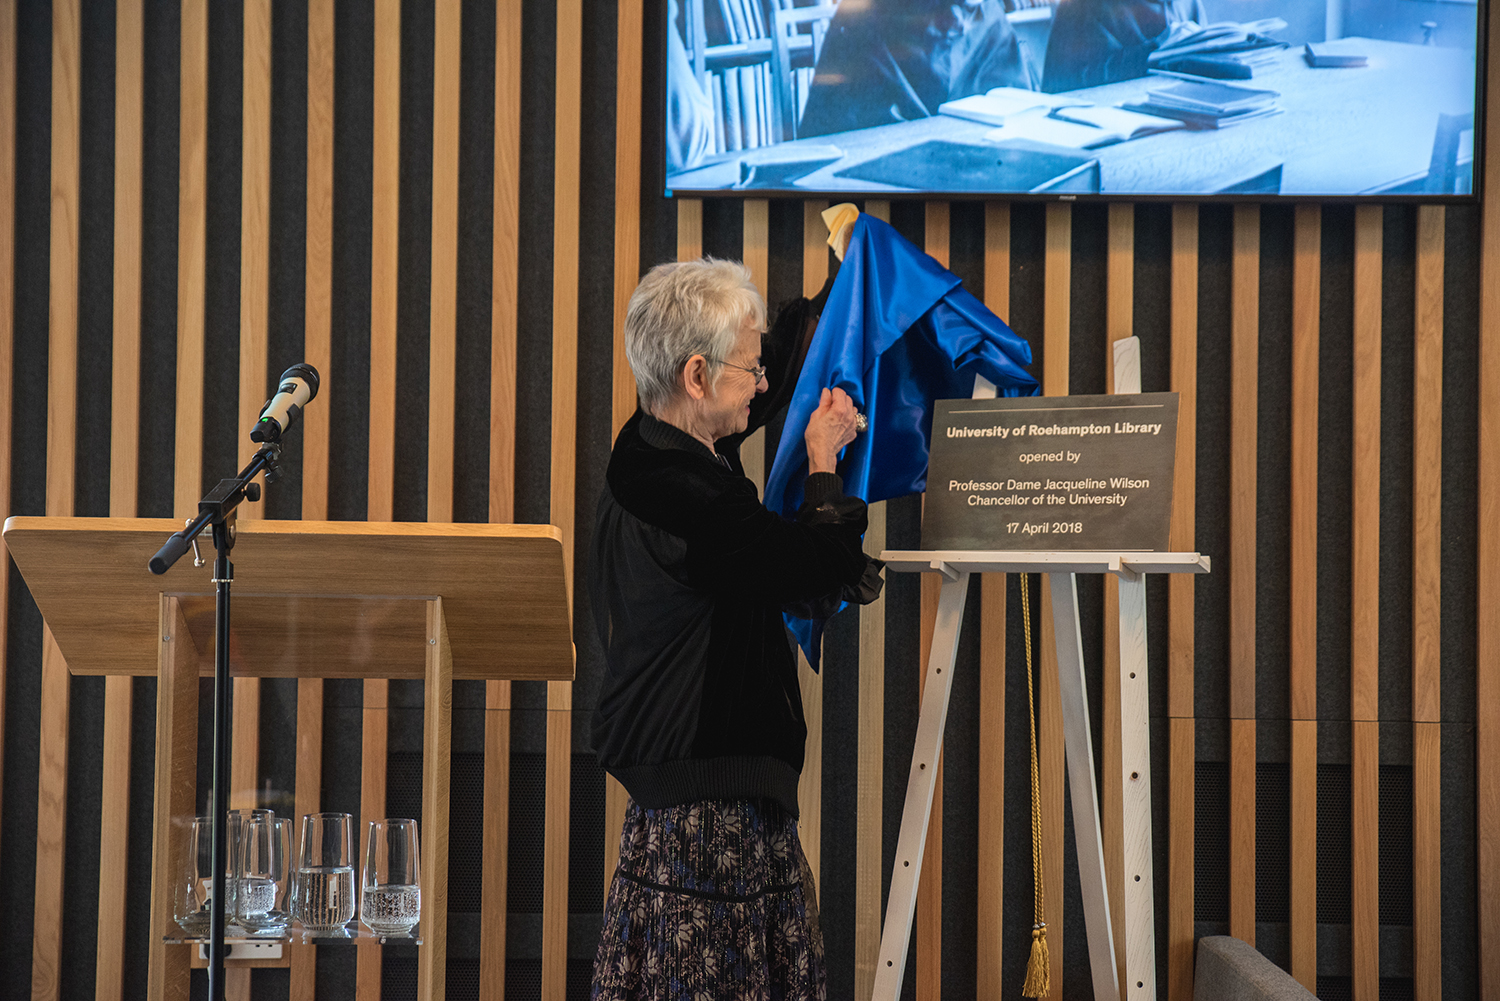 Image - New Library officially opened by University's Chancellor, Dame Jacqueline Wilson